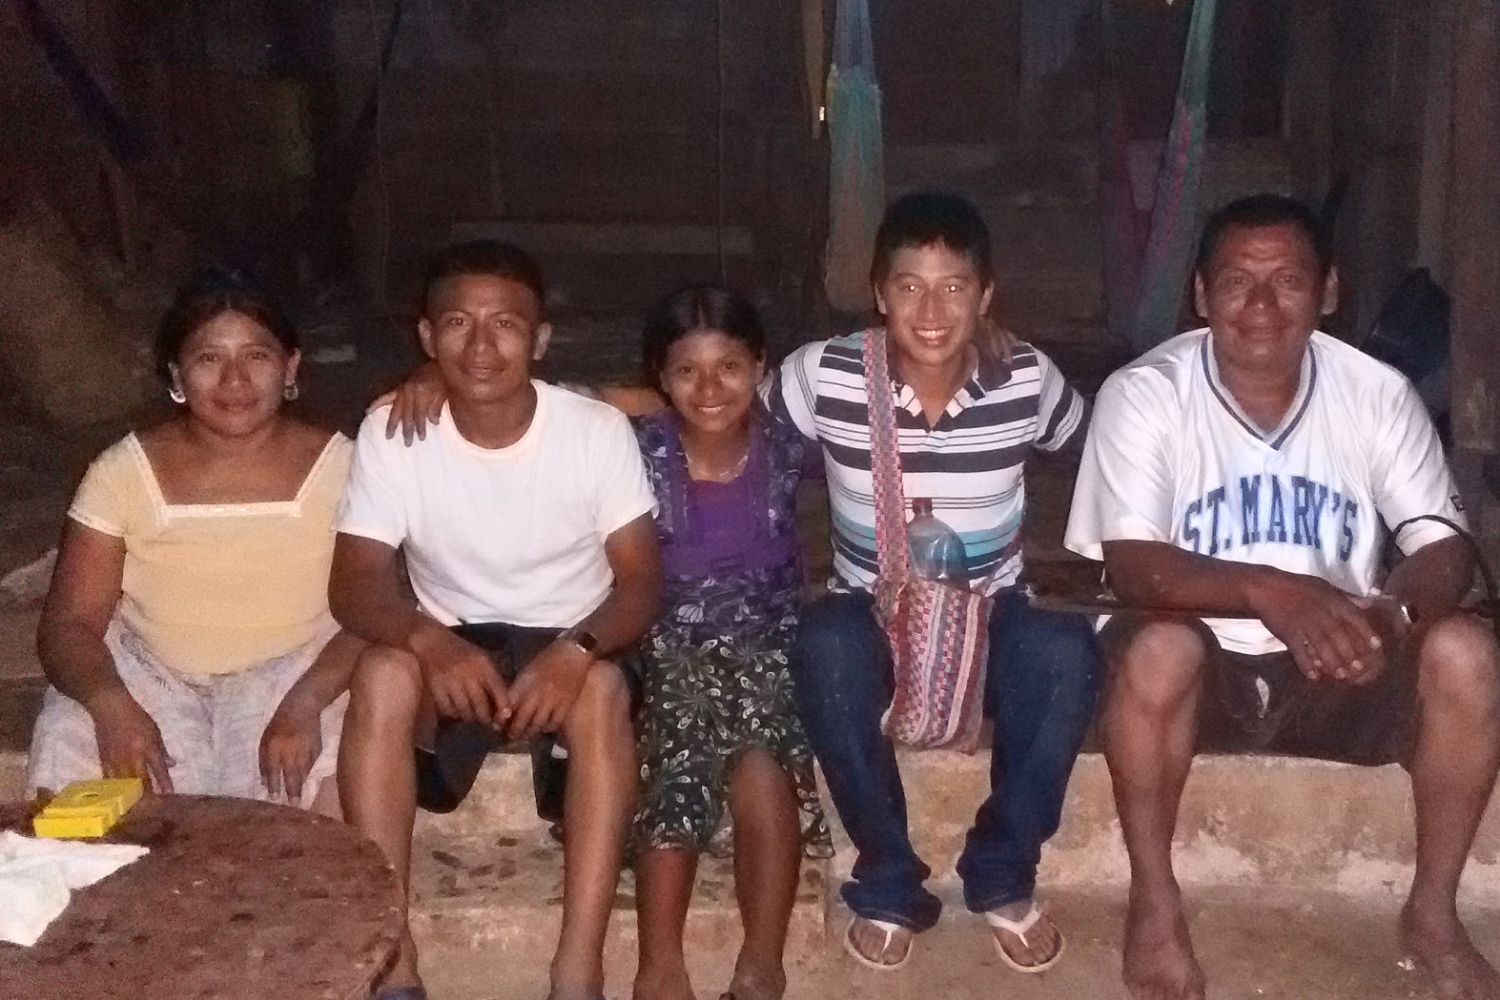 Alexis (second from the right) and the Quib family in San Benito Poite, Belize